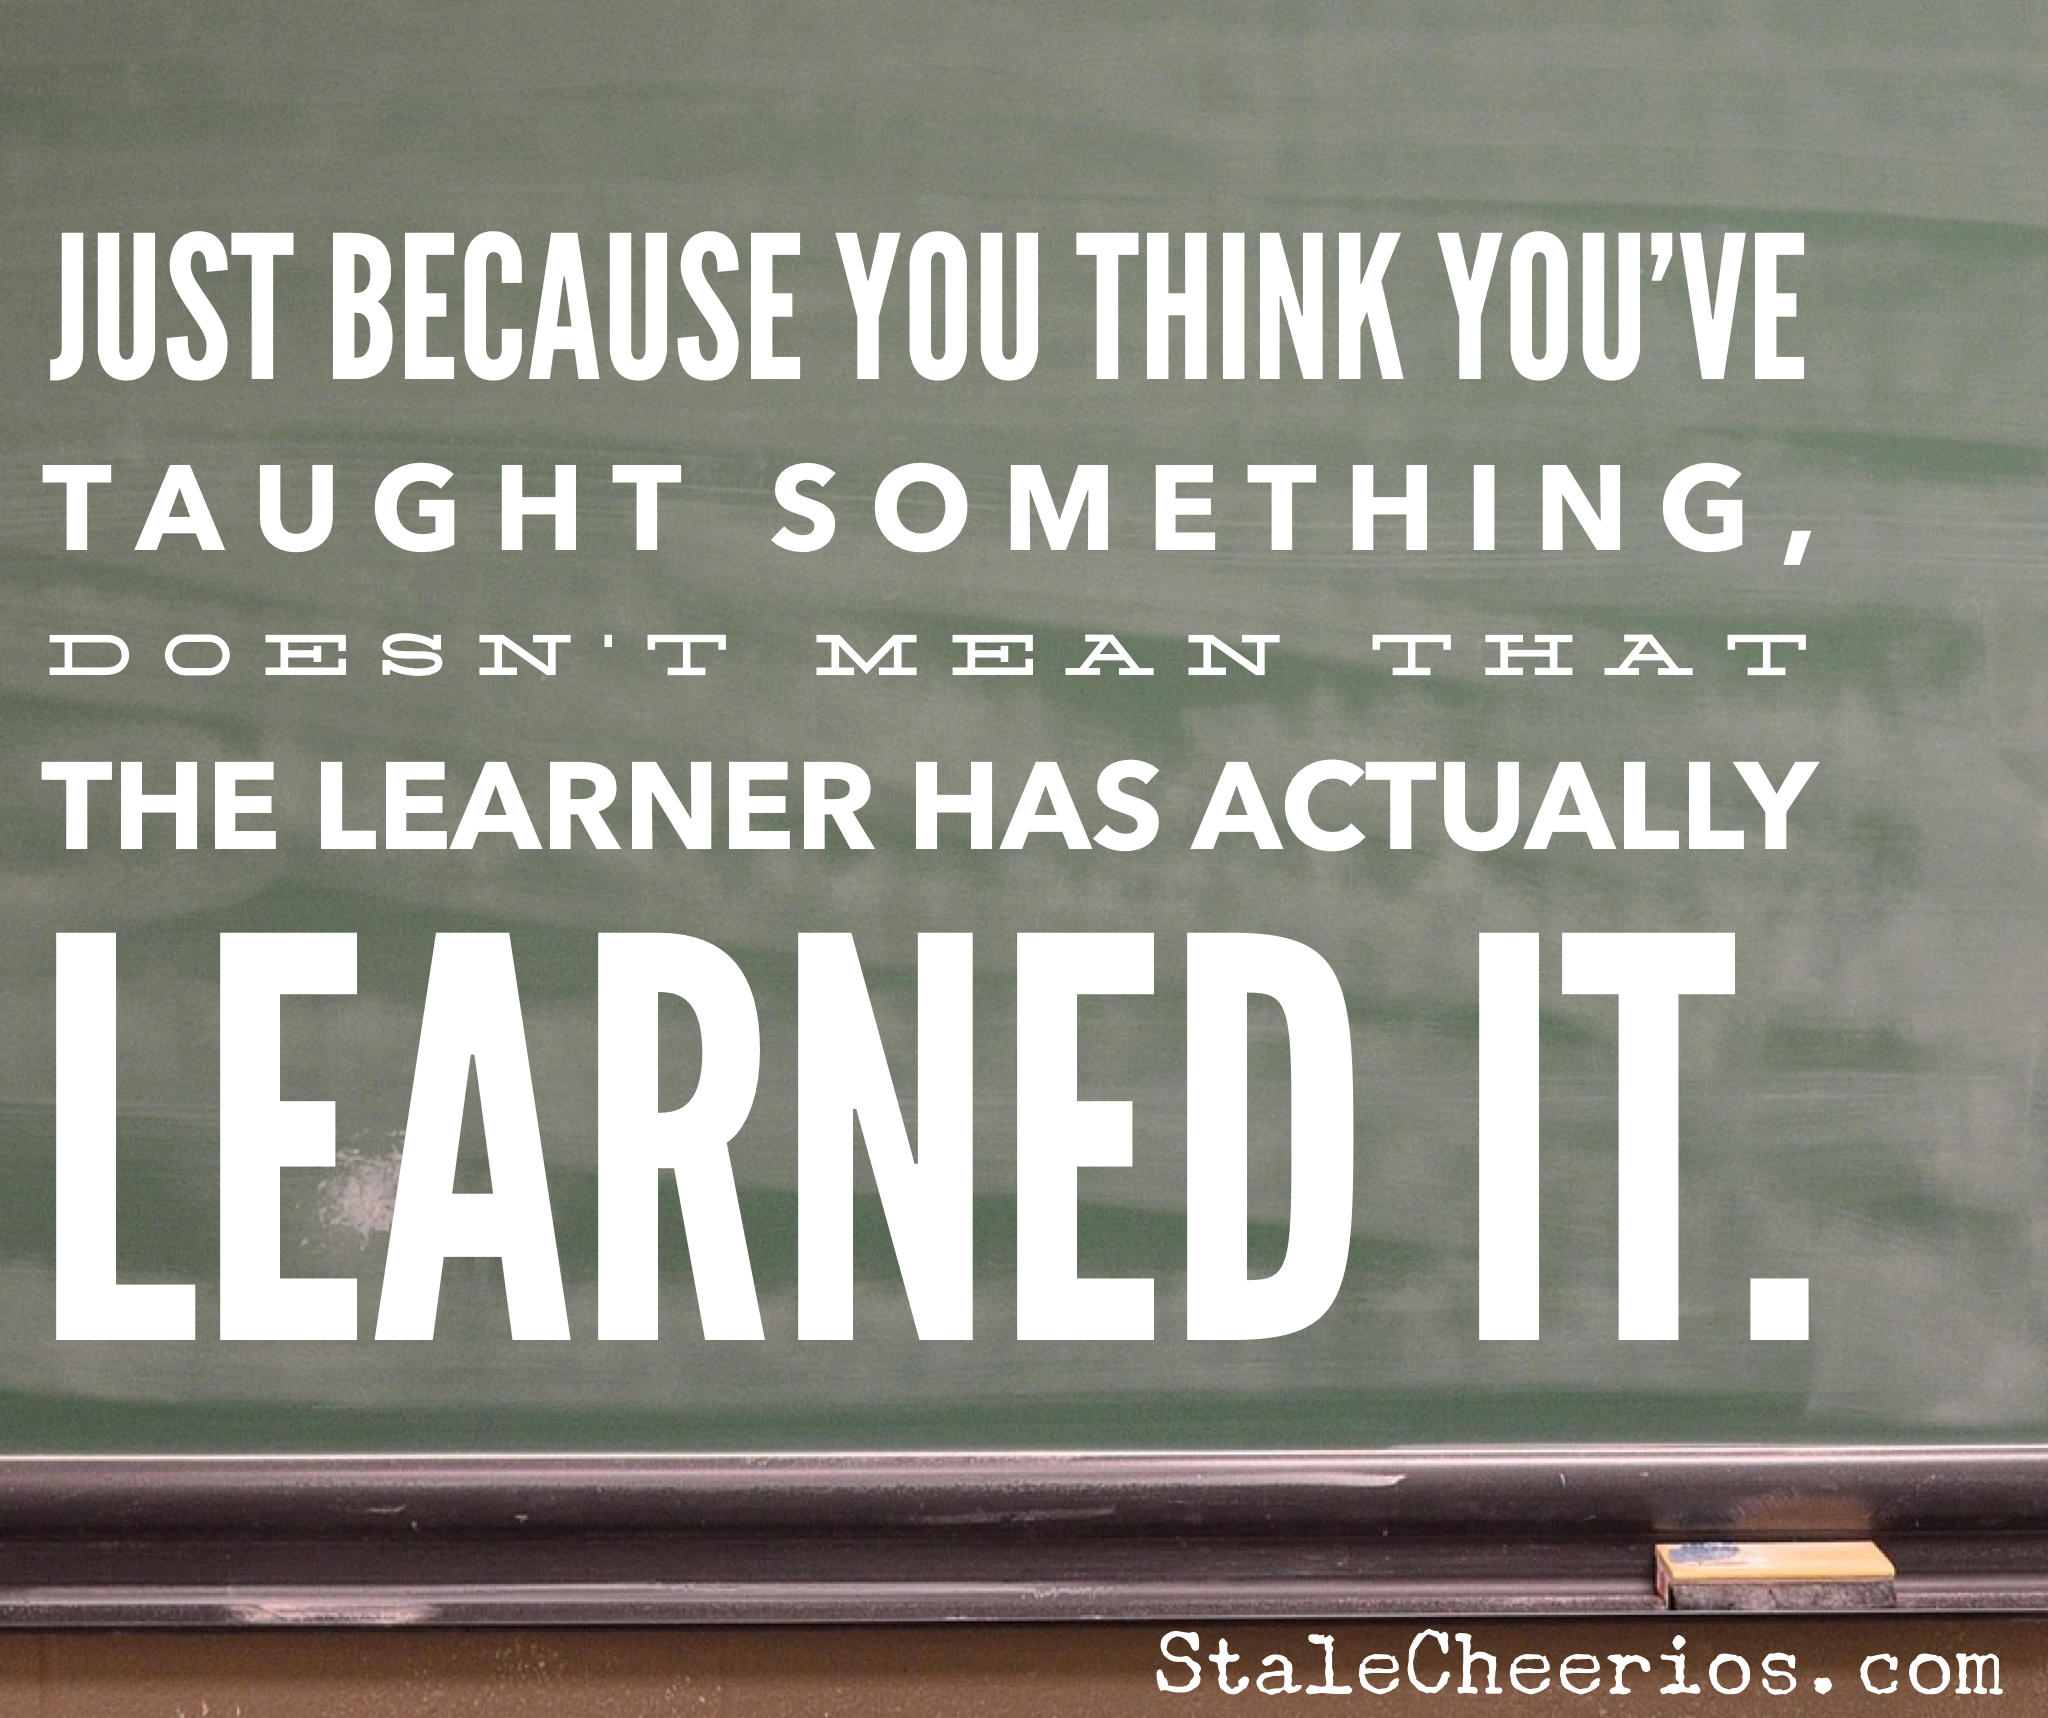 Chalkboard with this quote: Just because you think you've taught something, doesn't mean that the learner has actually learned it.